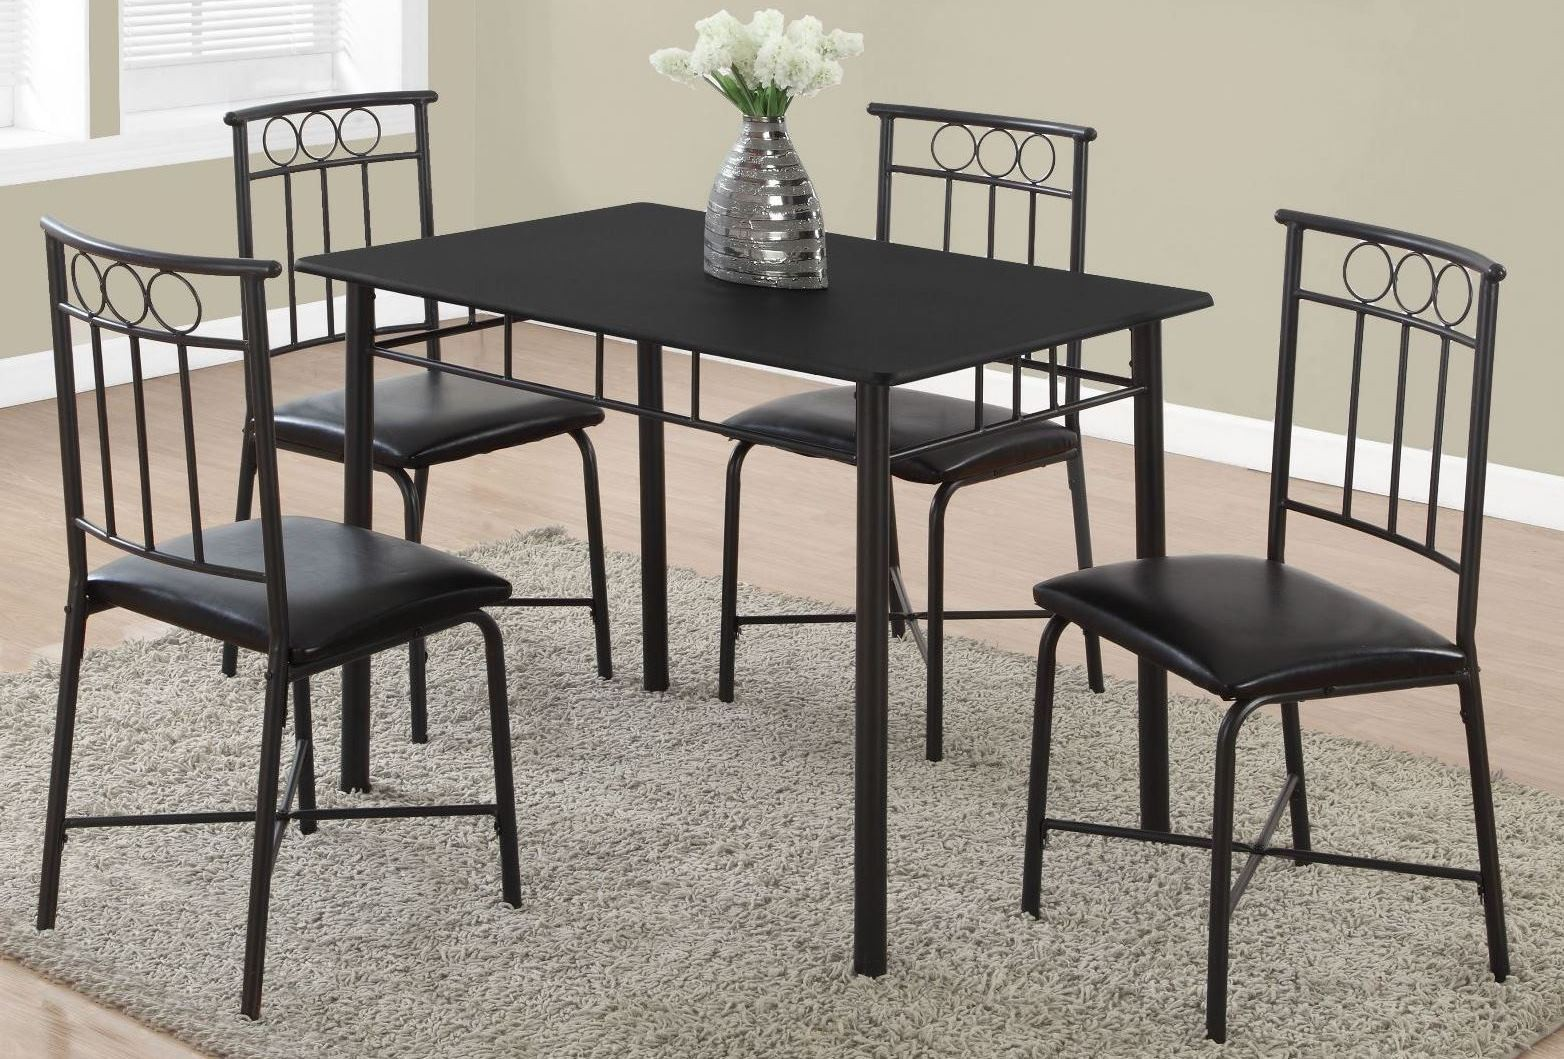 Black Metal 5 Piece Dining Room Set From Monarch Coleman